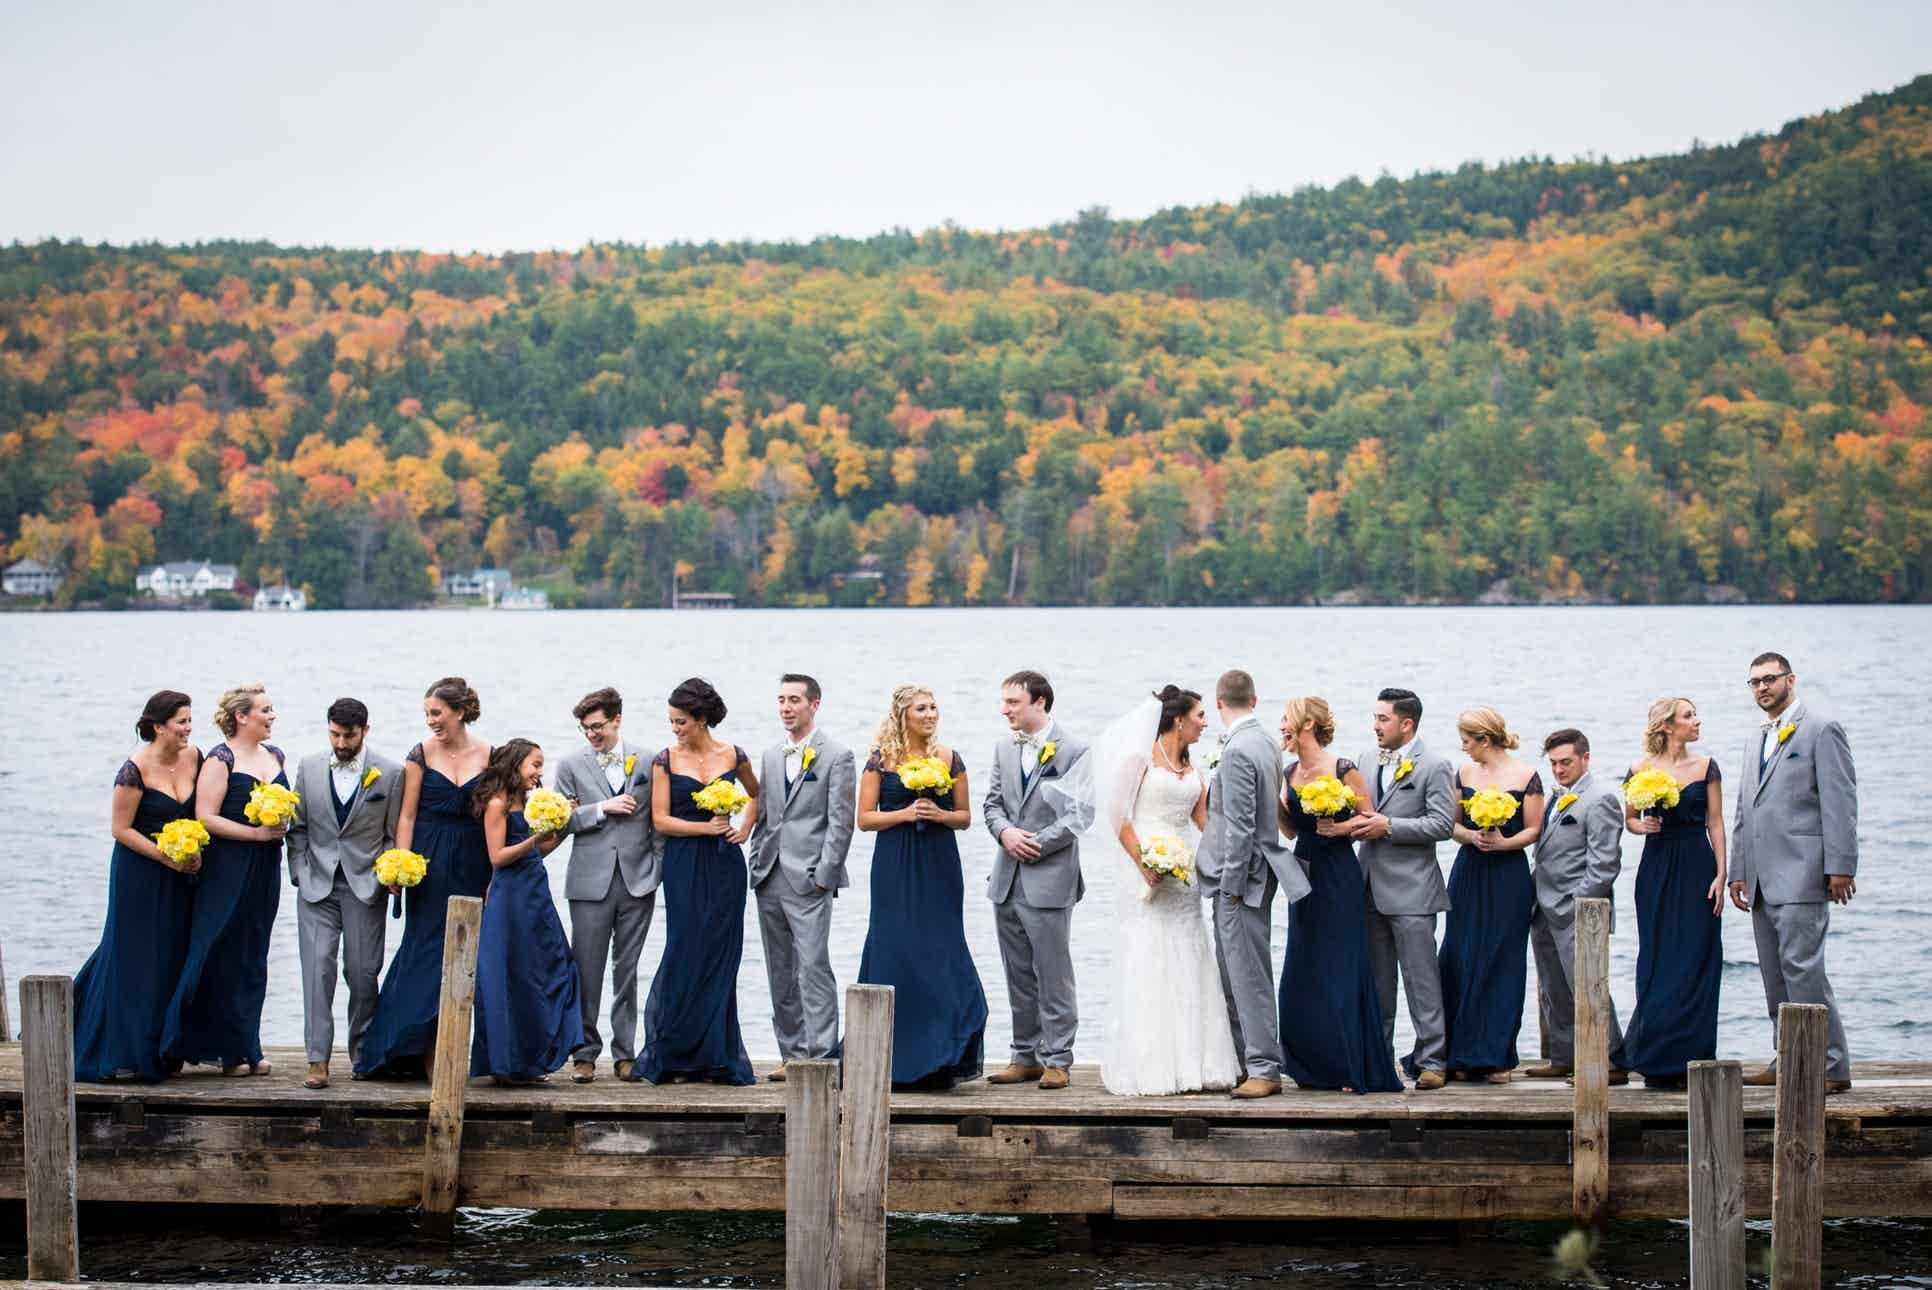 See The Inn at Erlowest, a beautiful Upstate NY wedding